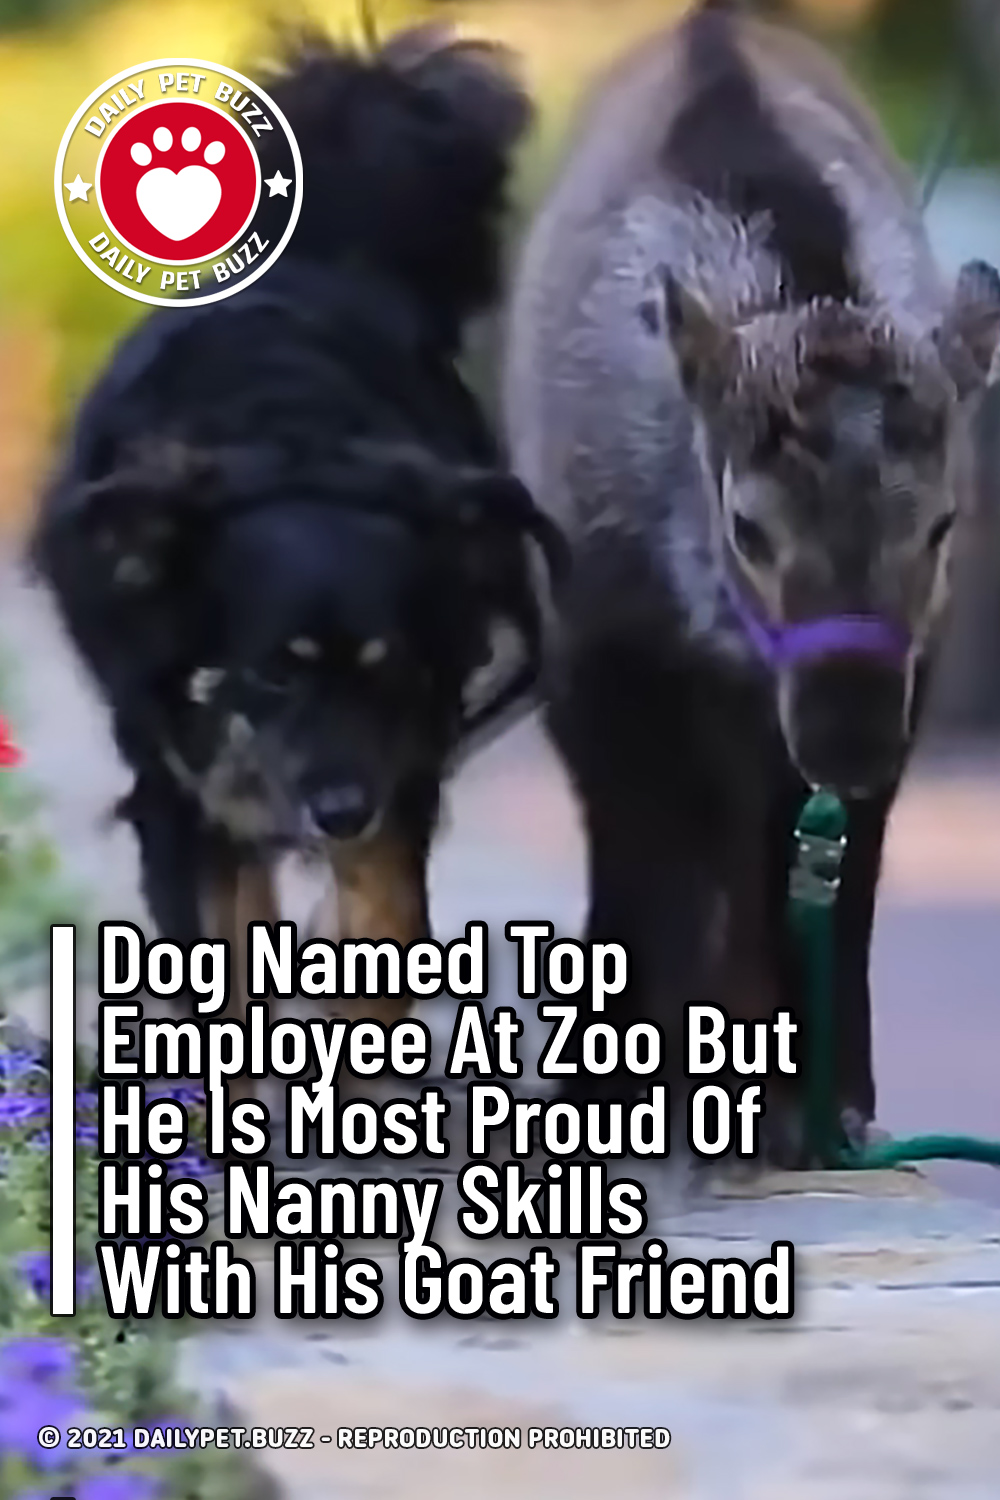 Dog Named Top Employee At Zoo But He Is Most Proud Of His Nanny Skills With His Goat Friend